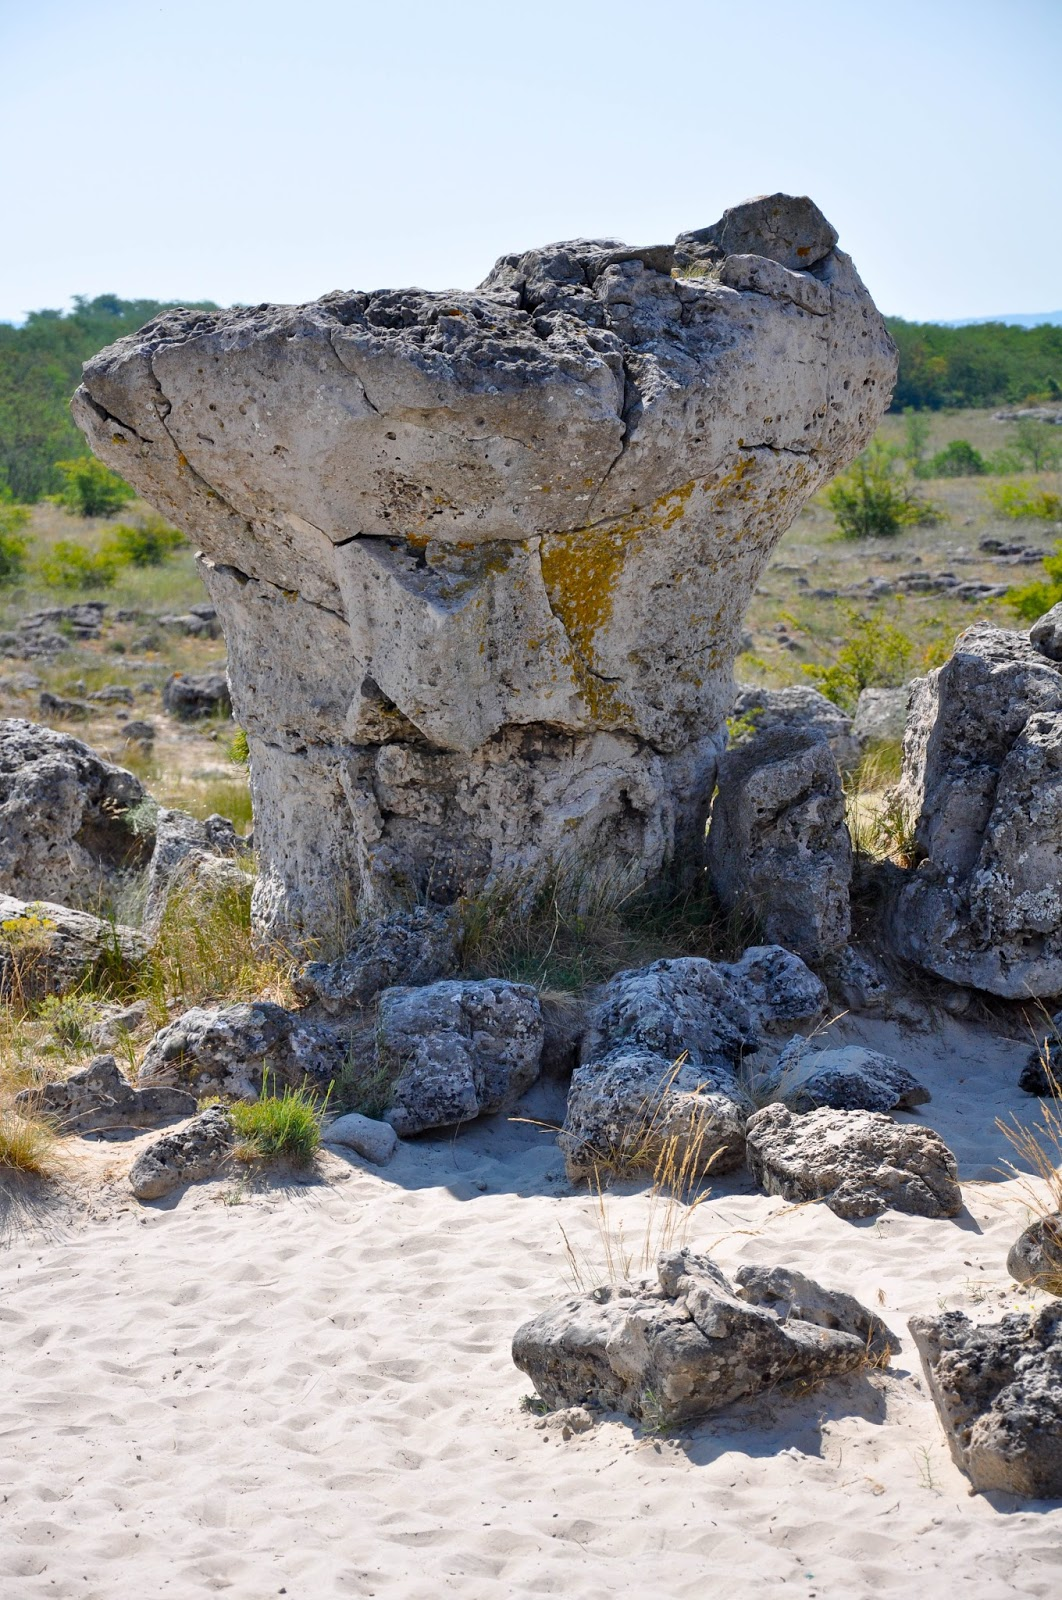 One of the larger stones, The Stone Forest, Varna, Bulgaria